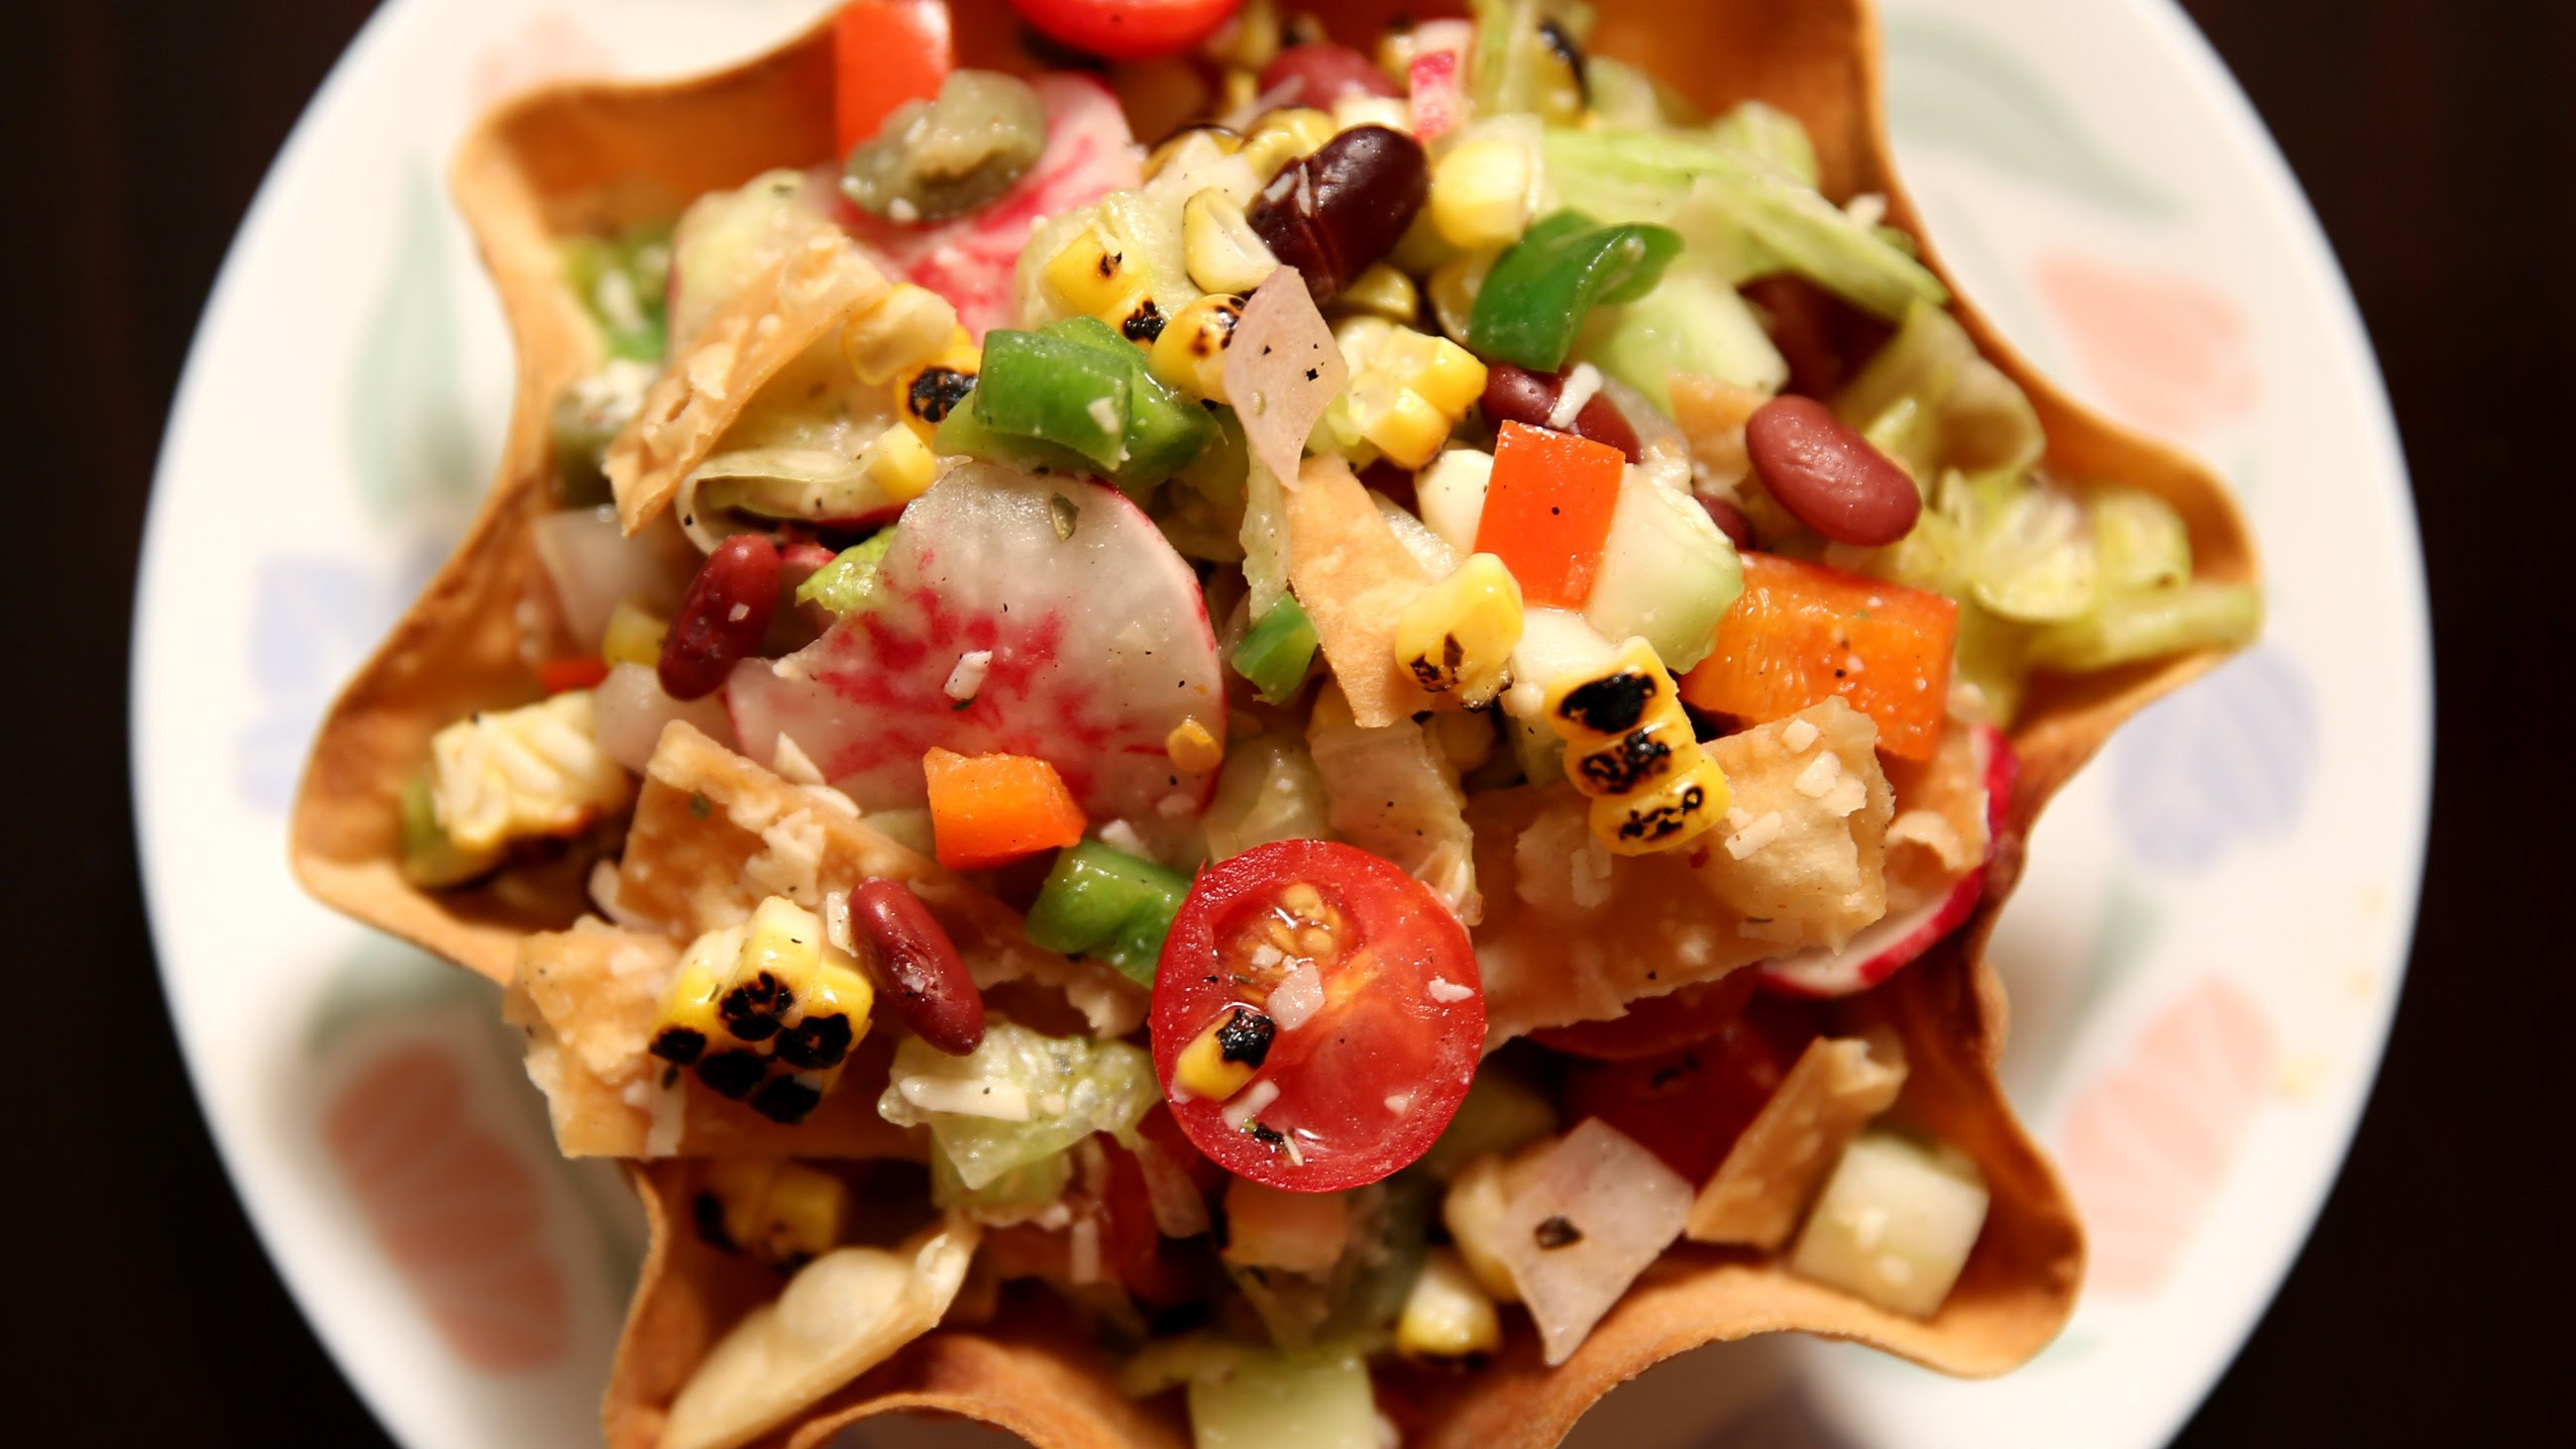 Healthy Mexican Salad Recipes  Mexican Style Salad Healthy Salad Recipe